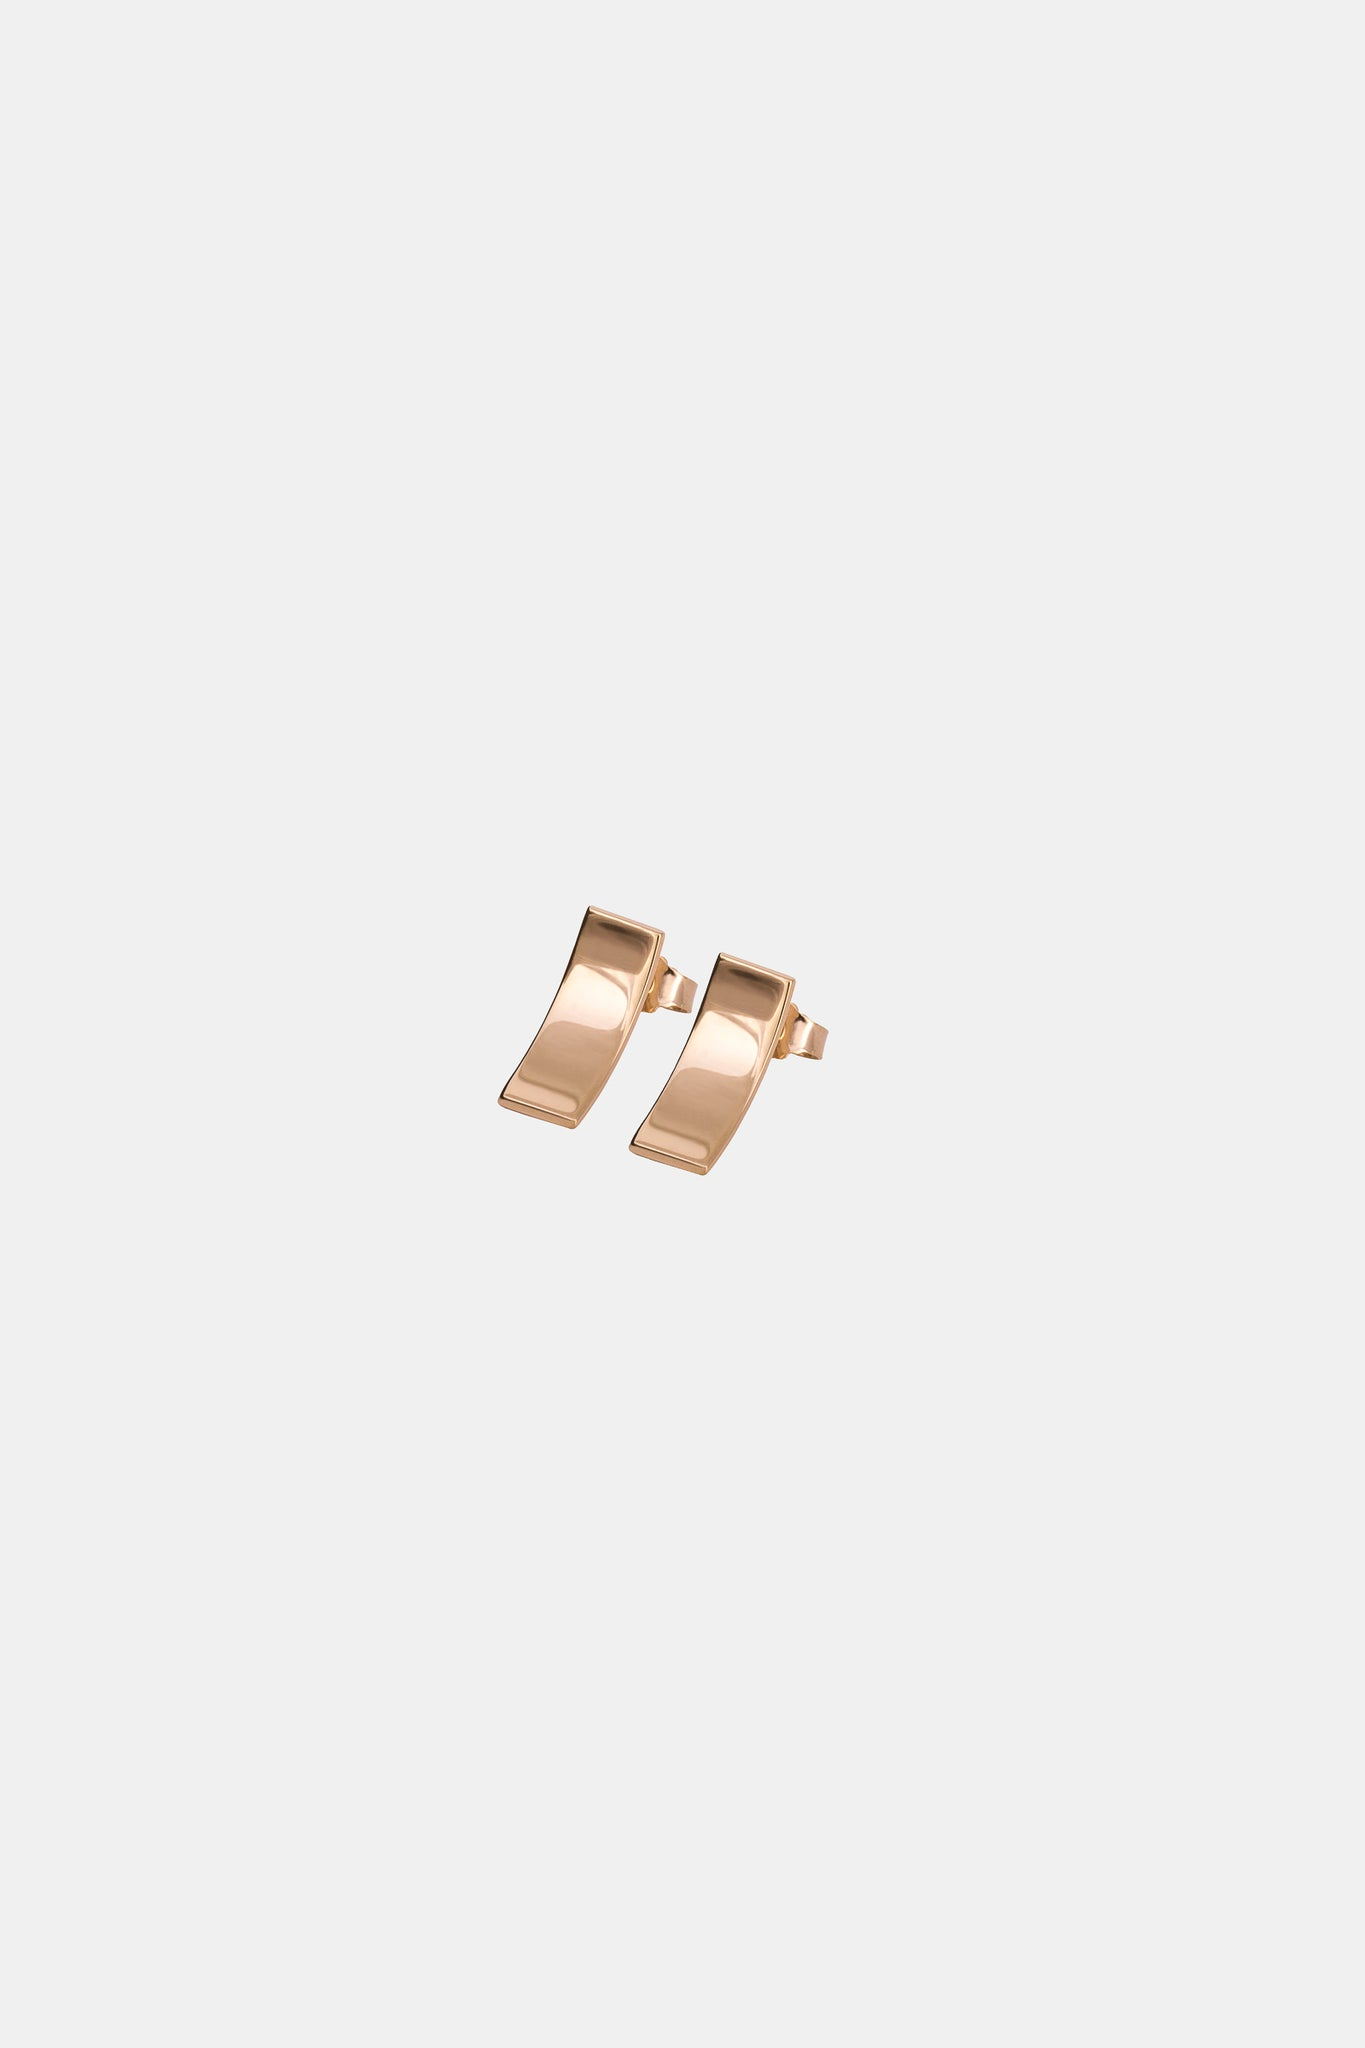 Yellow gold plated minimalistic earrings made in Germany